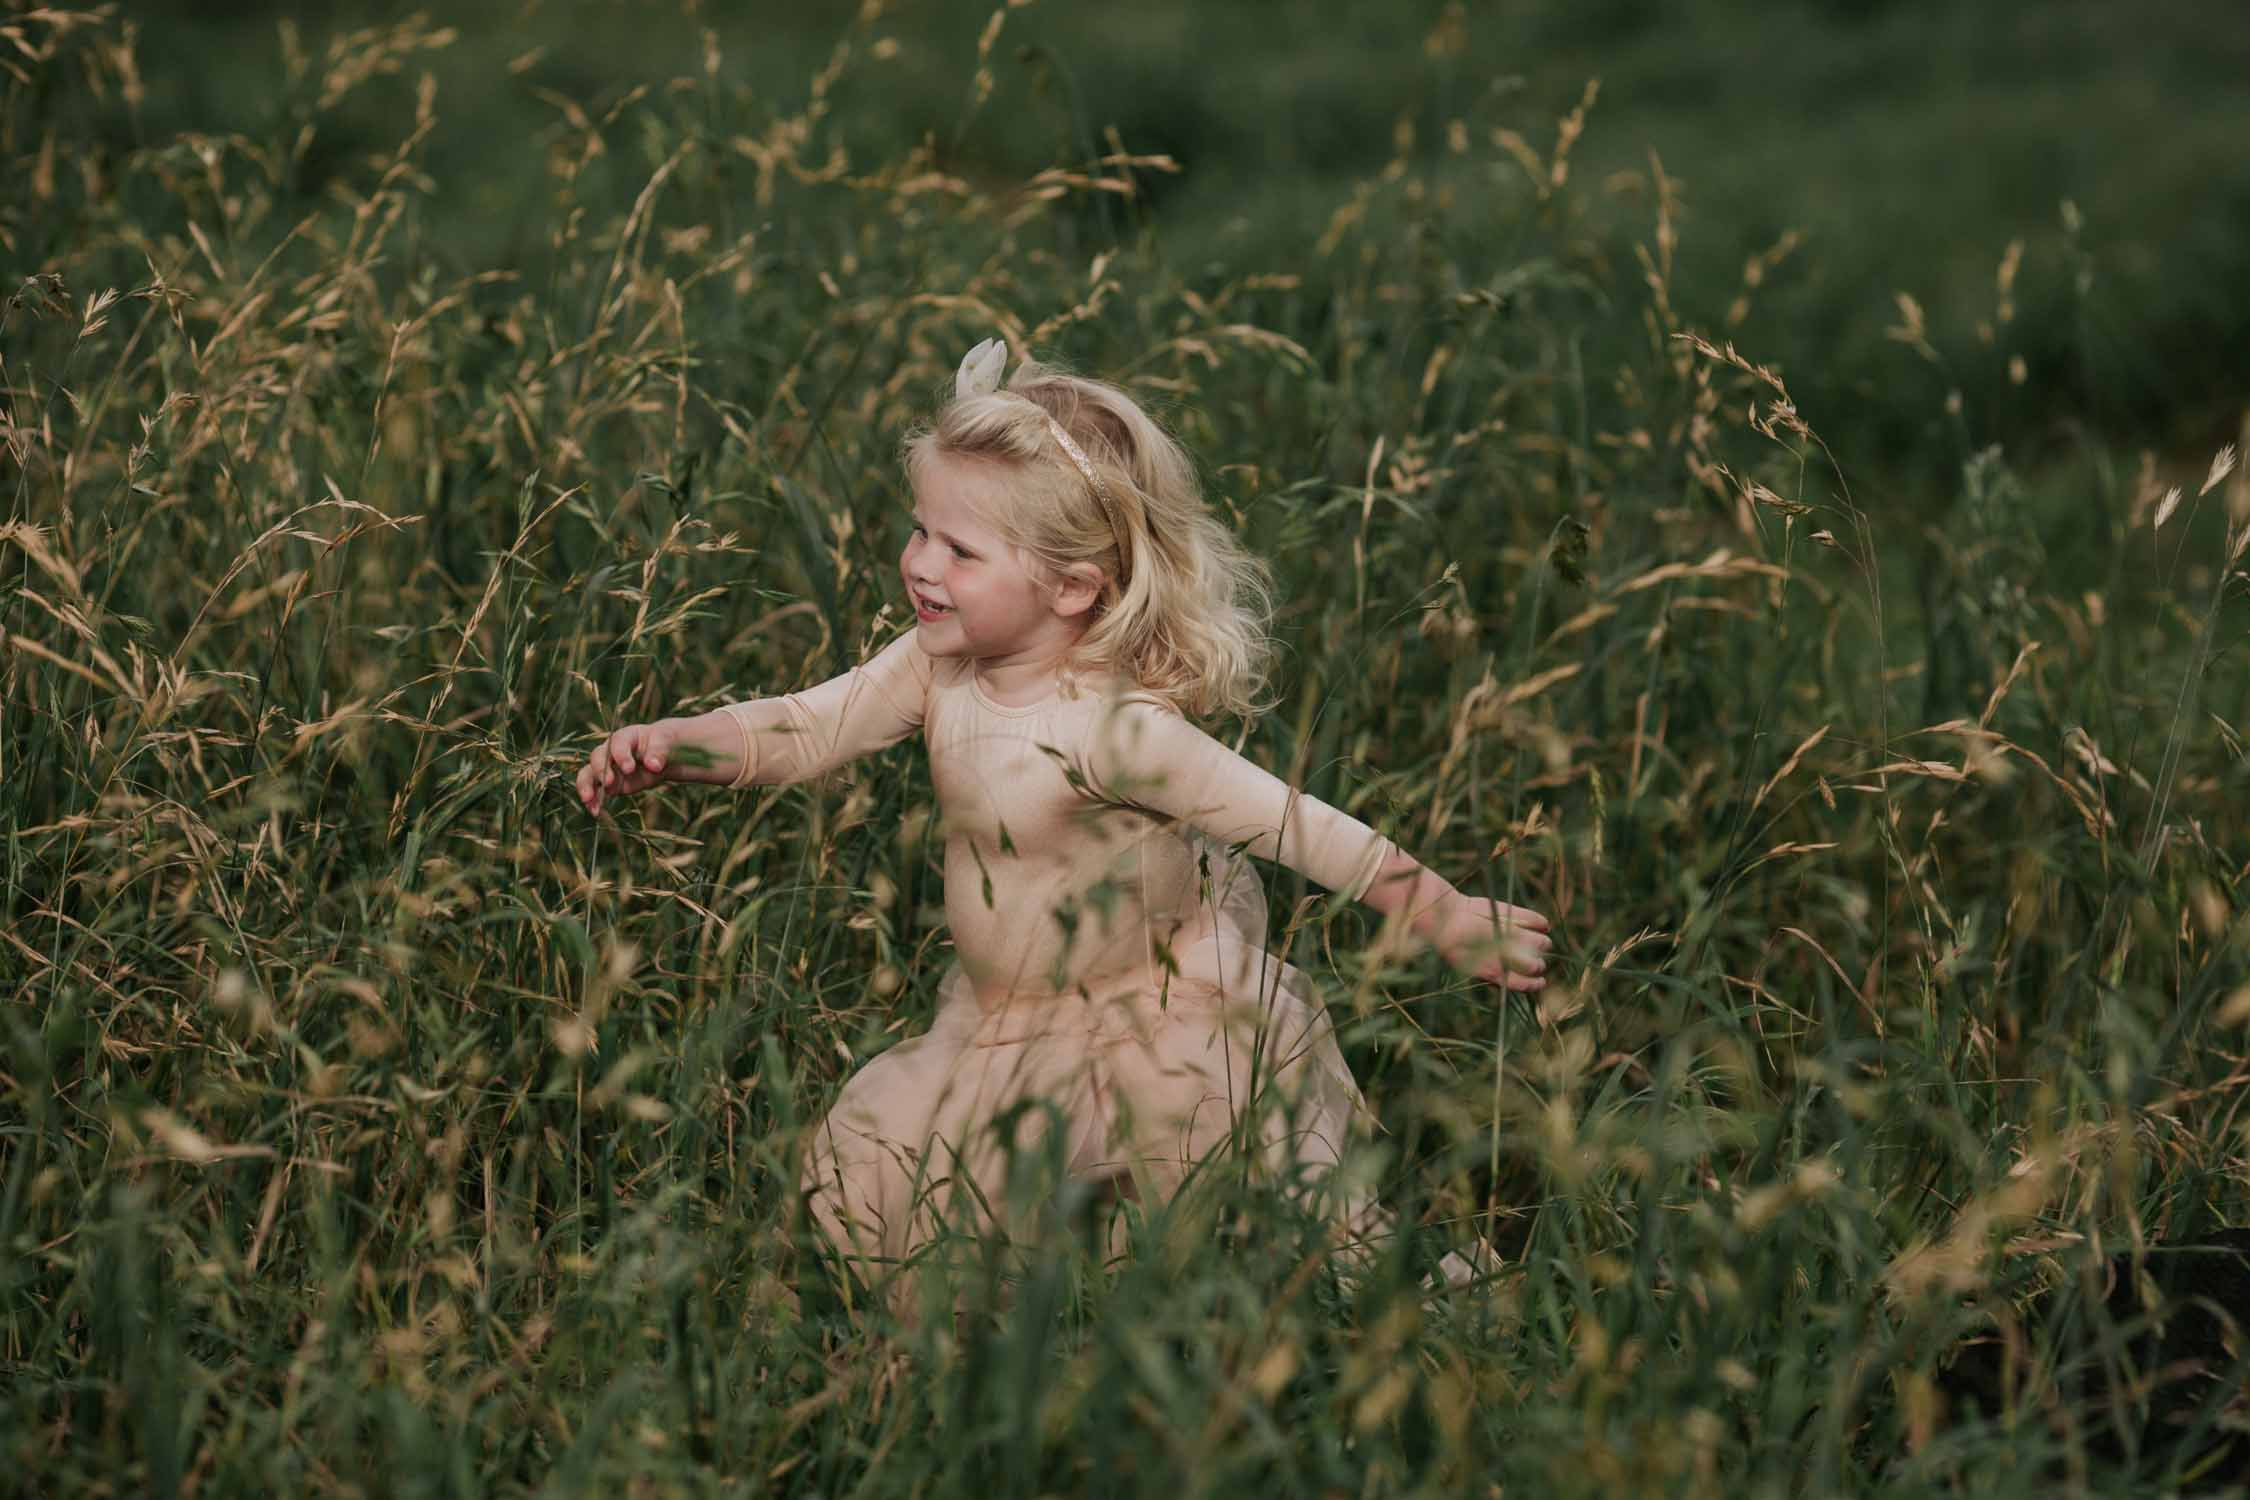 Flower girl running through the field wearing a cute pink outfit.